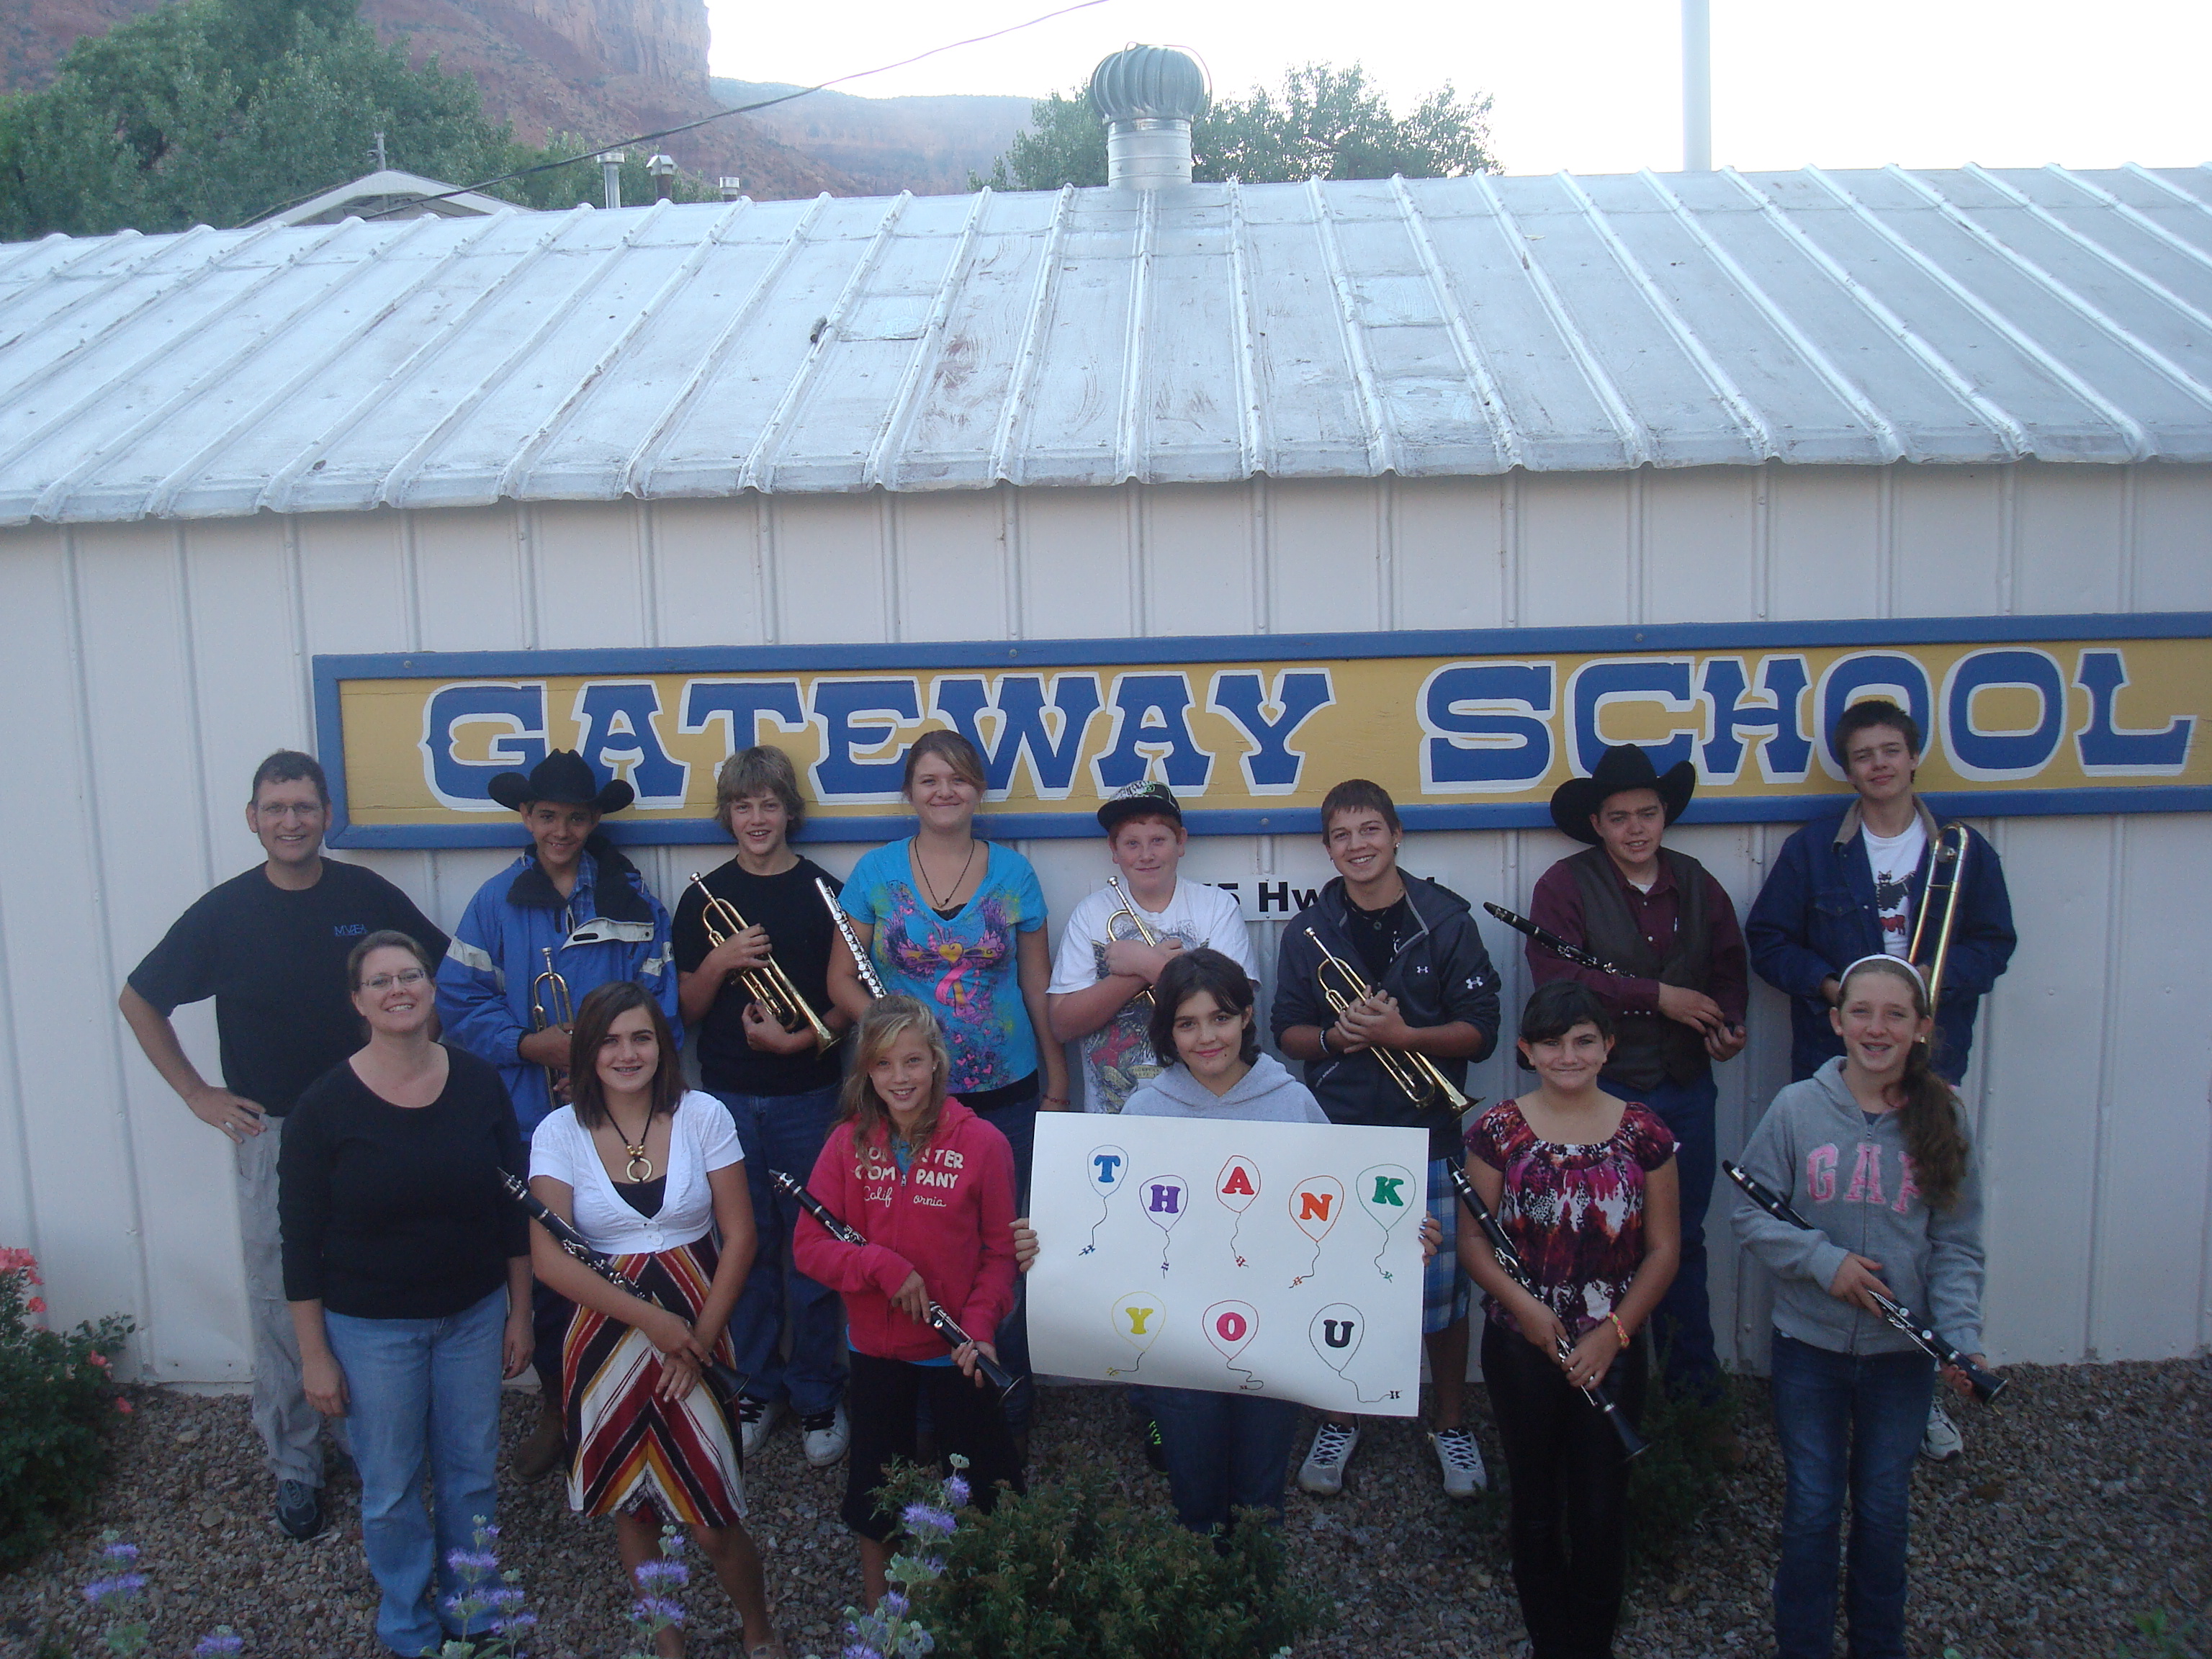 Gateway School Instrument Drive